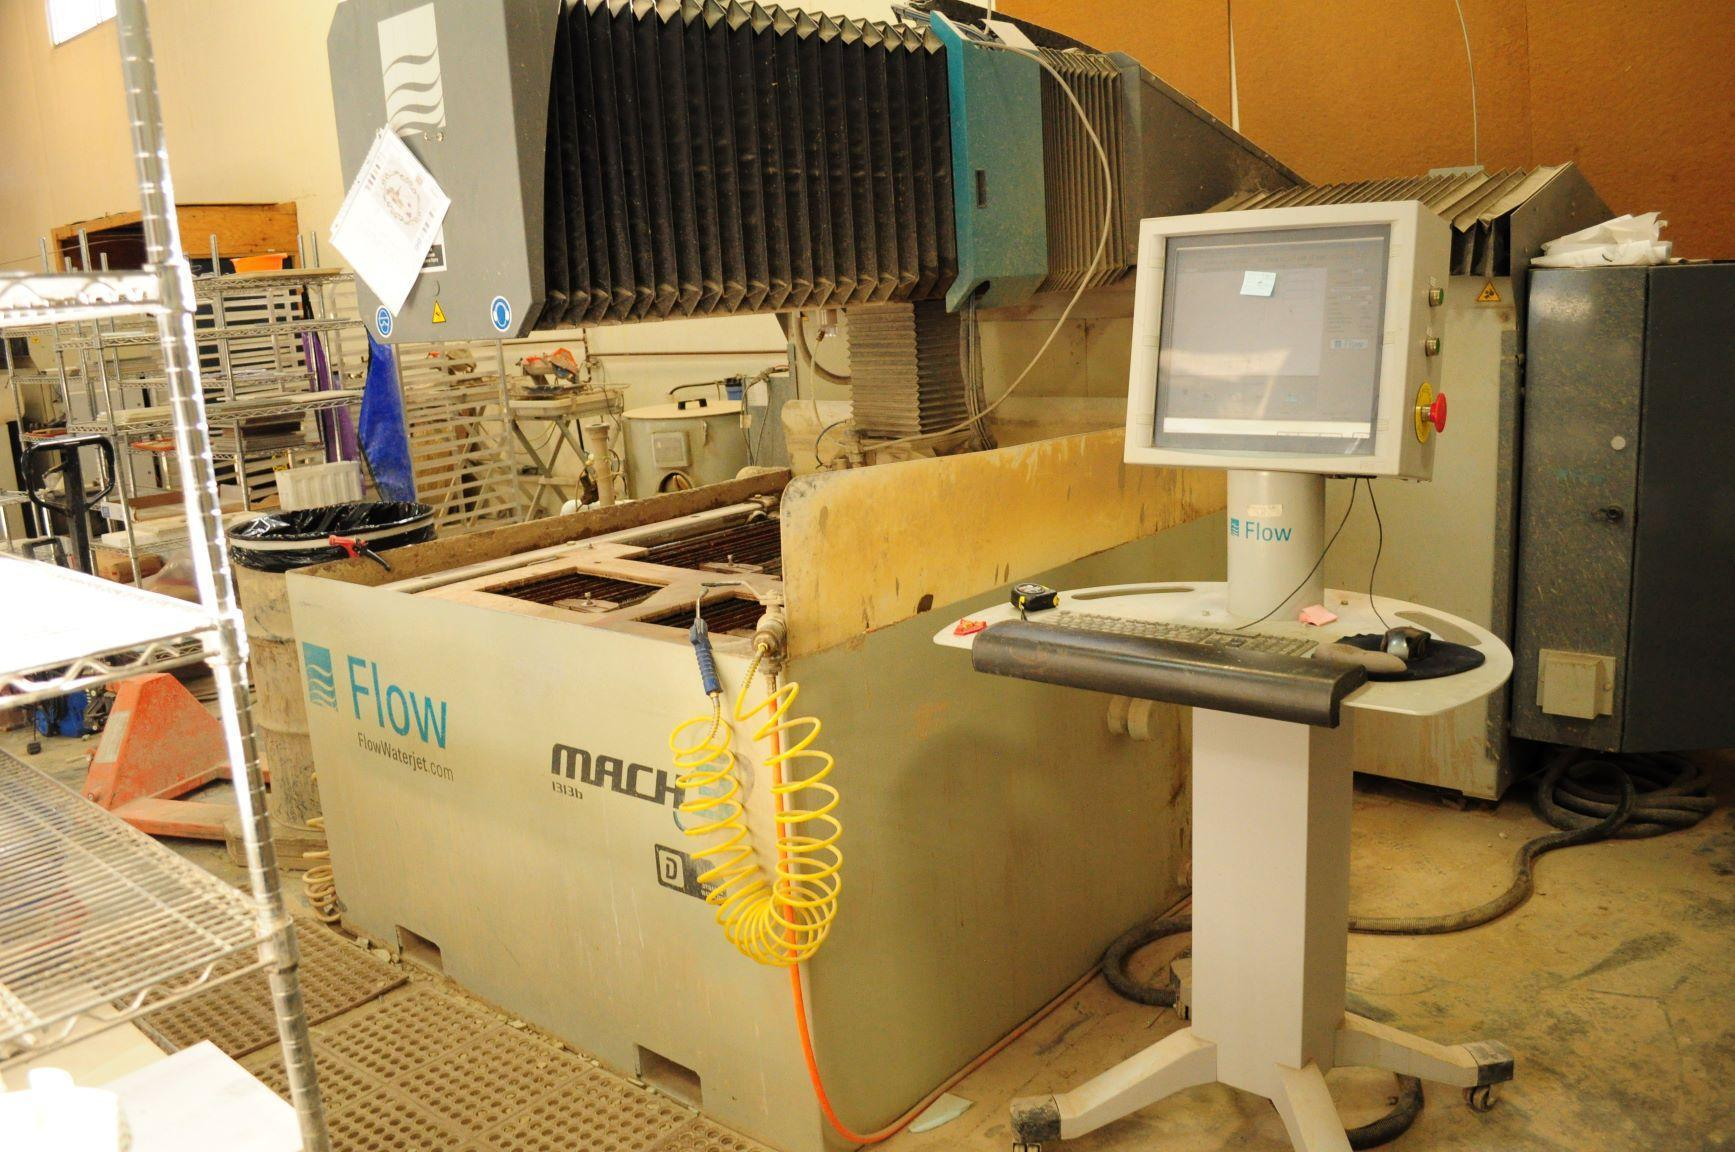 Flow Mach 3 1313b Dynamic CNC Waterjet Cutting System - 2011